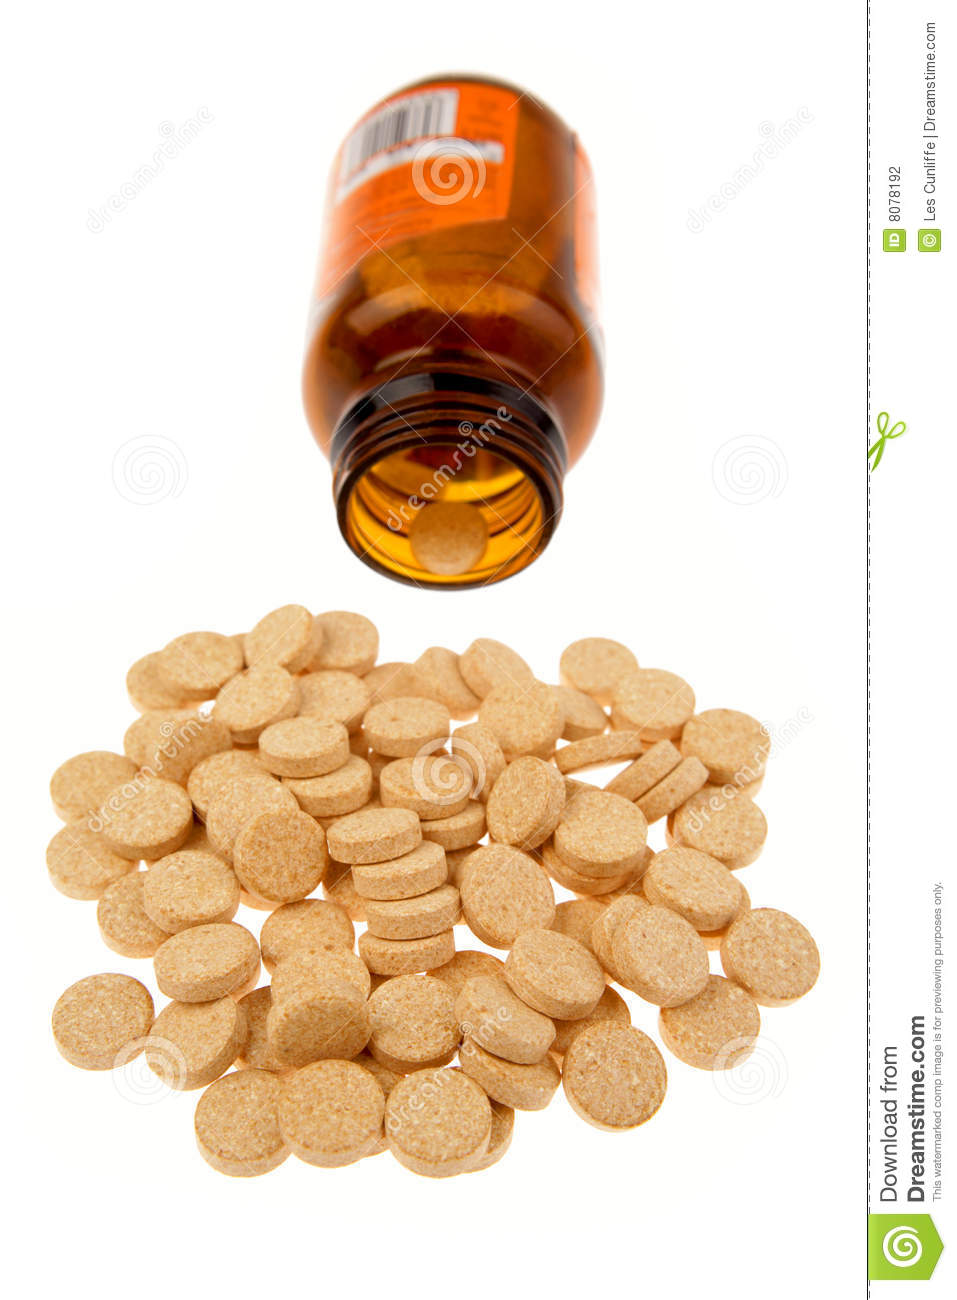 vitamin c tablets stock photography image 8078192